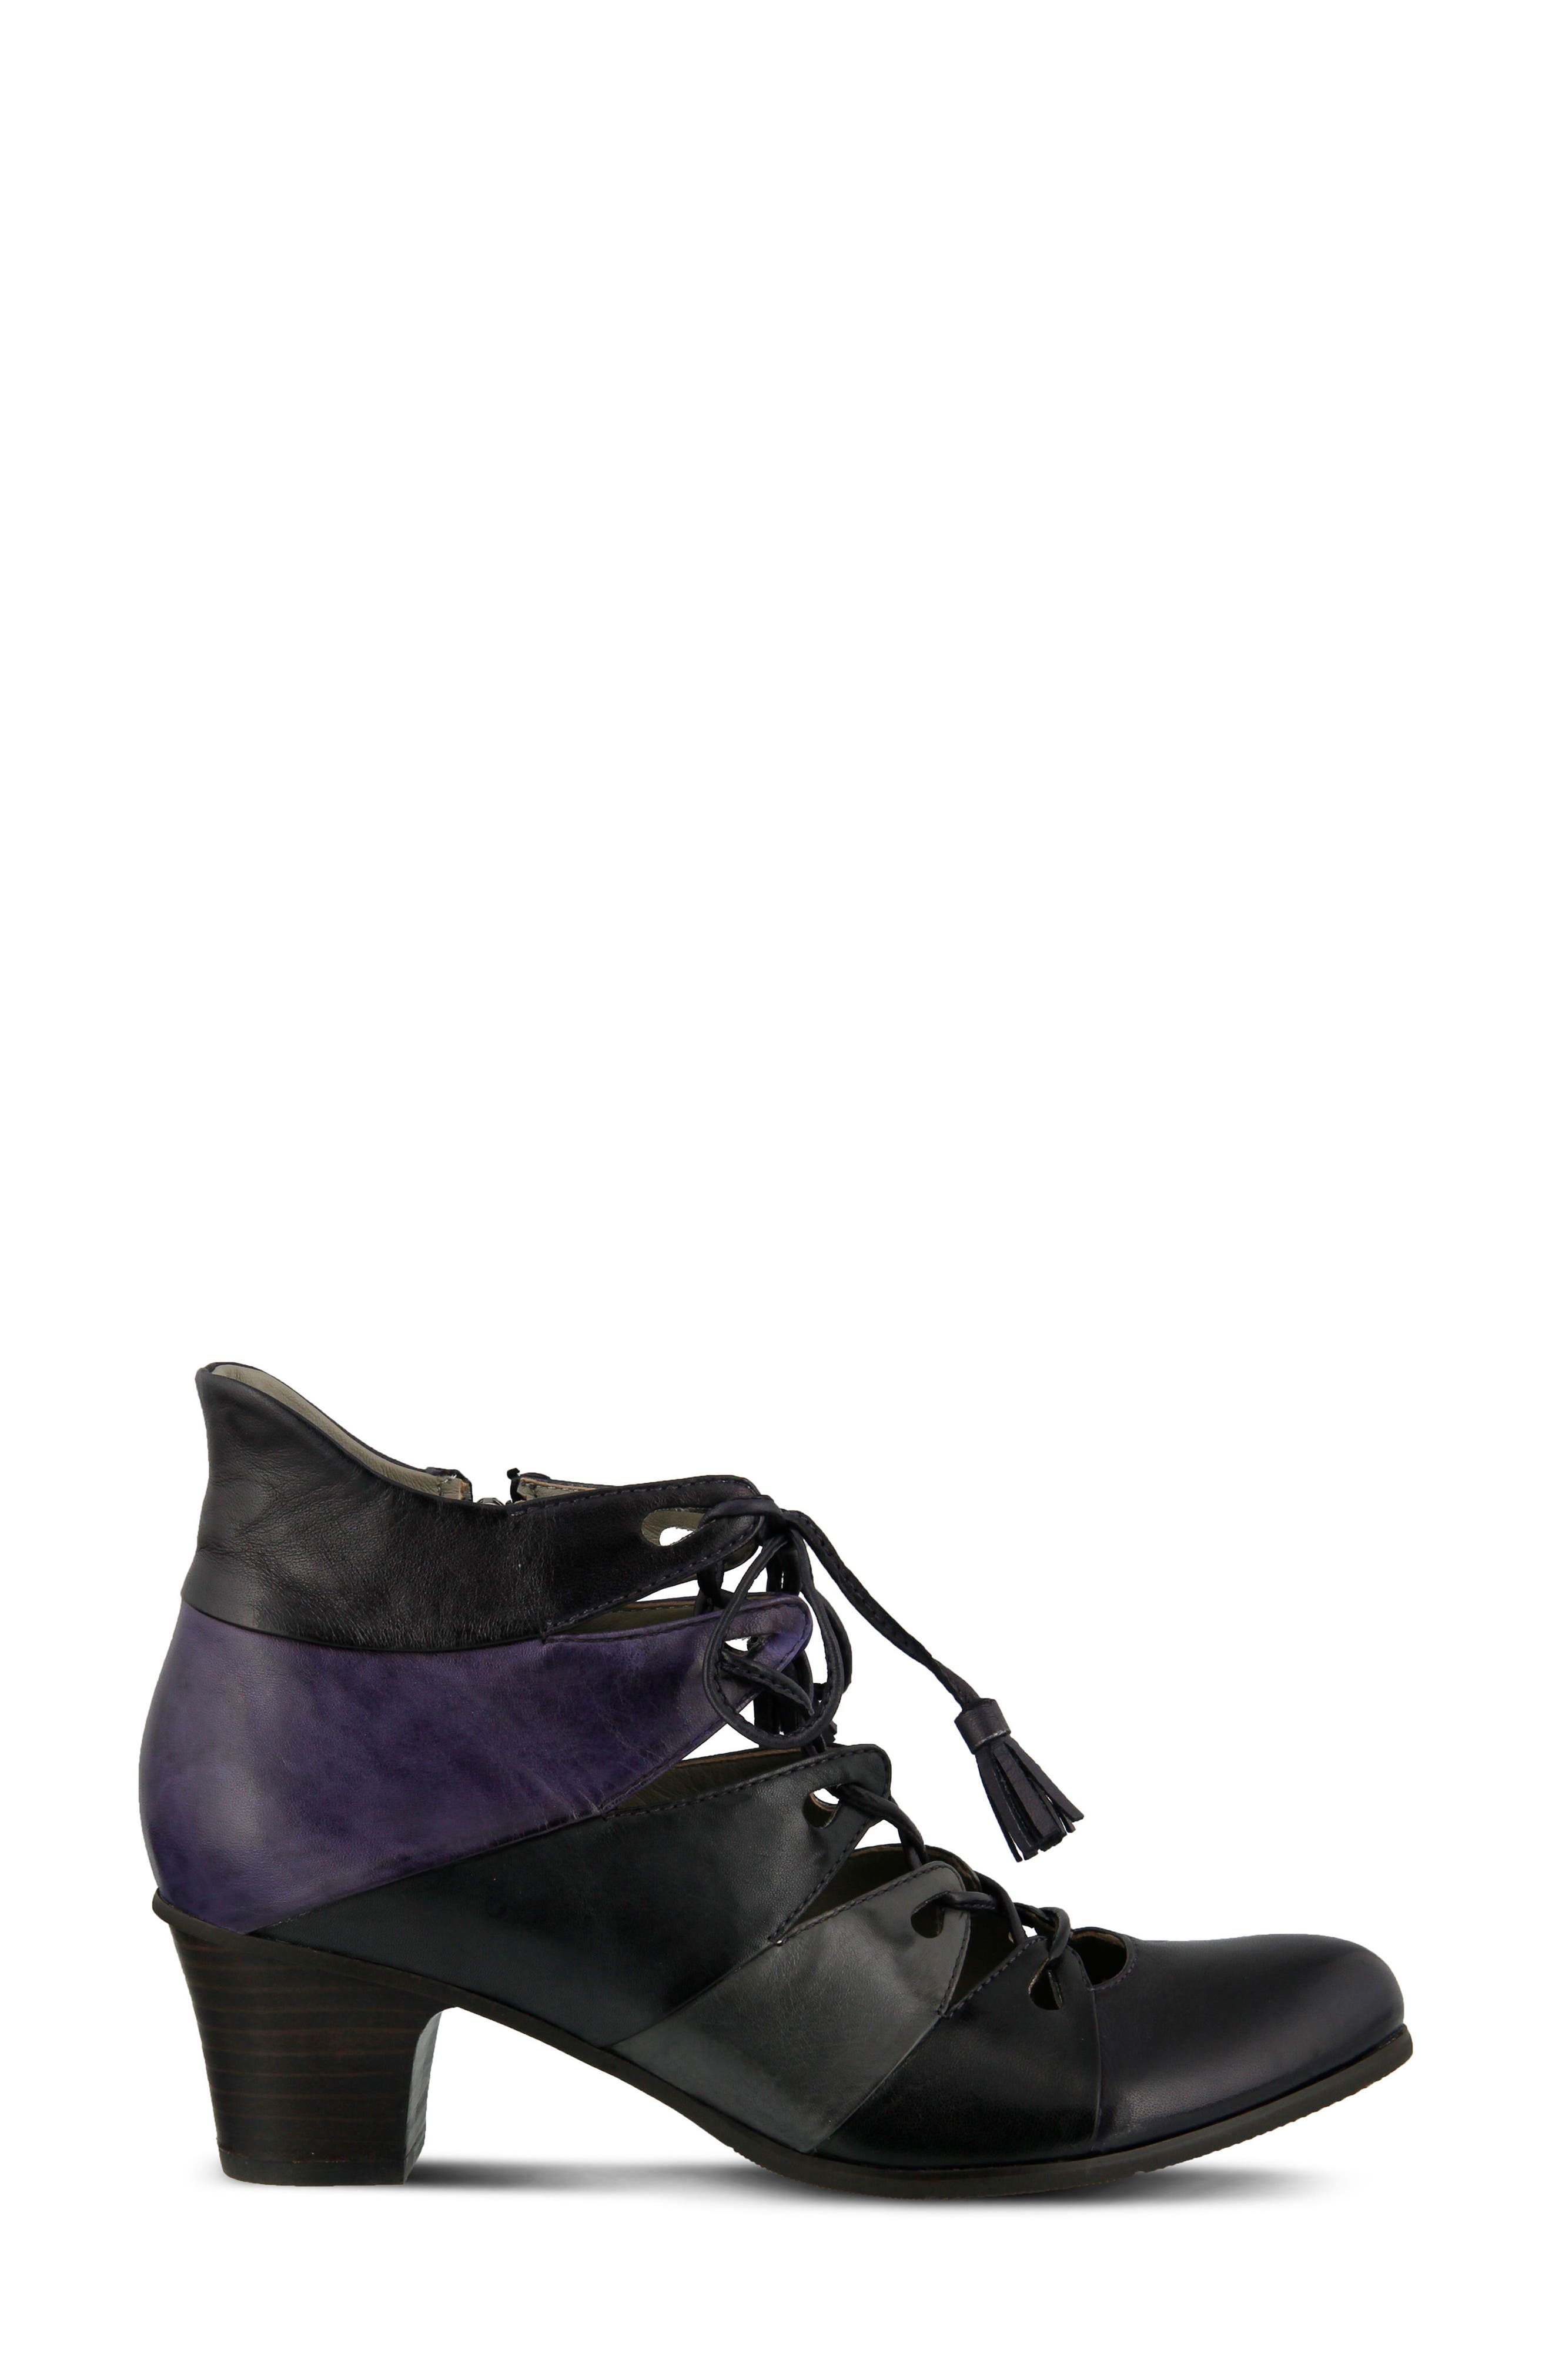 Estrela Ghillie Bootie,                             Alternate thumbnail 3, color,                             PURPLE MULTI LEATHER